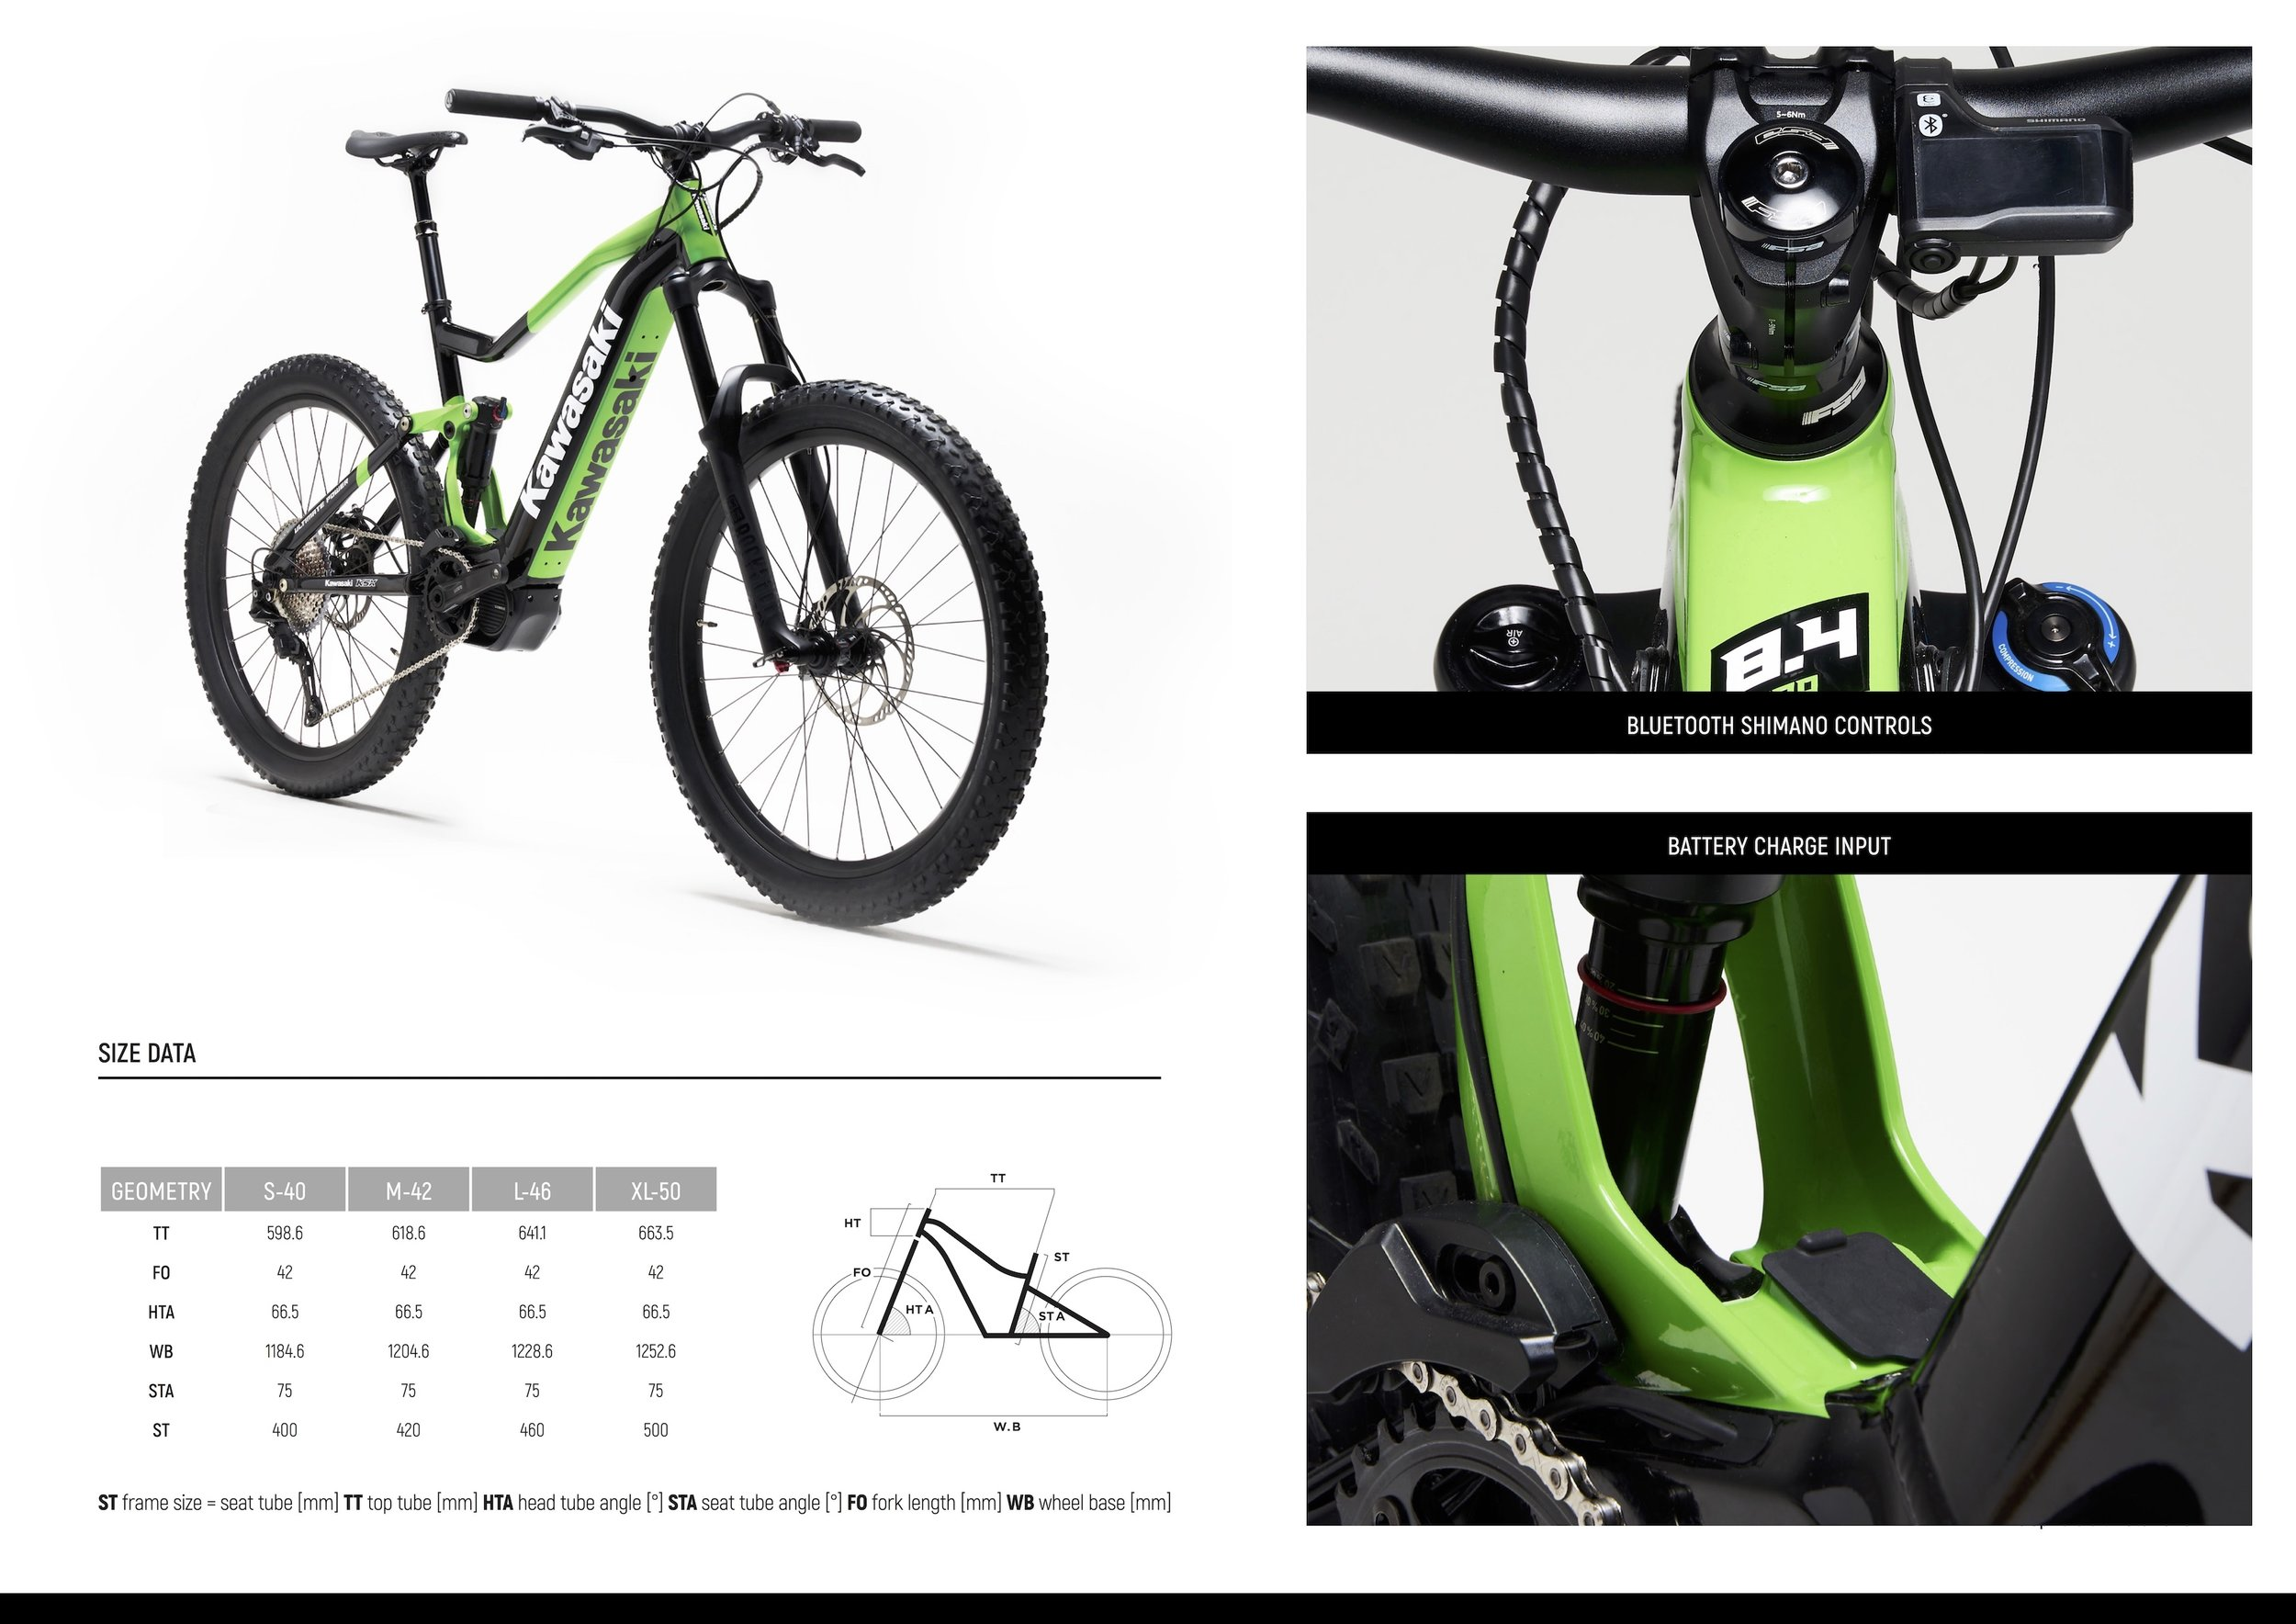 kawasaki+mountain+bike+integrated+battery+buy+now+ebikes.jpg